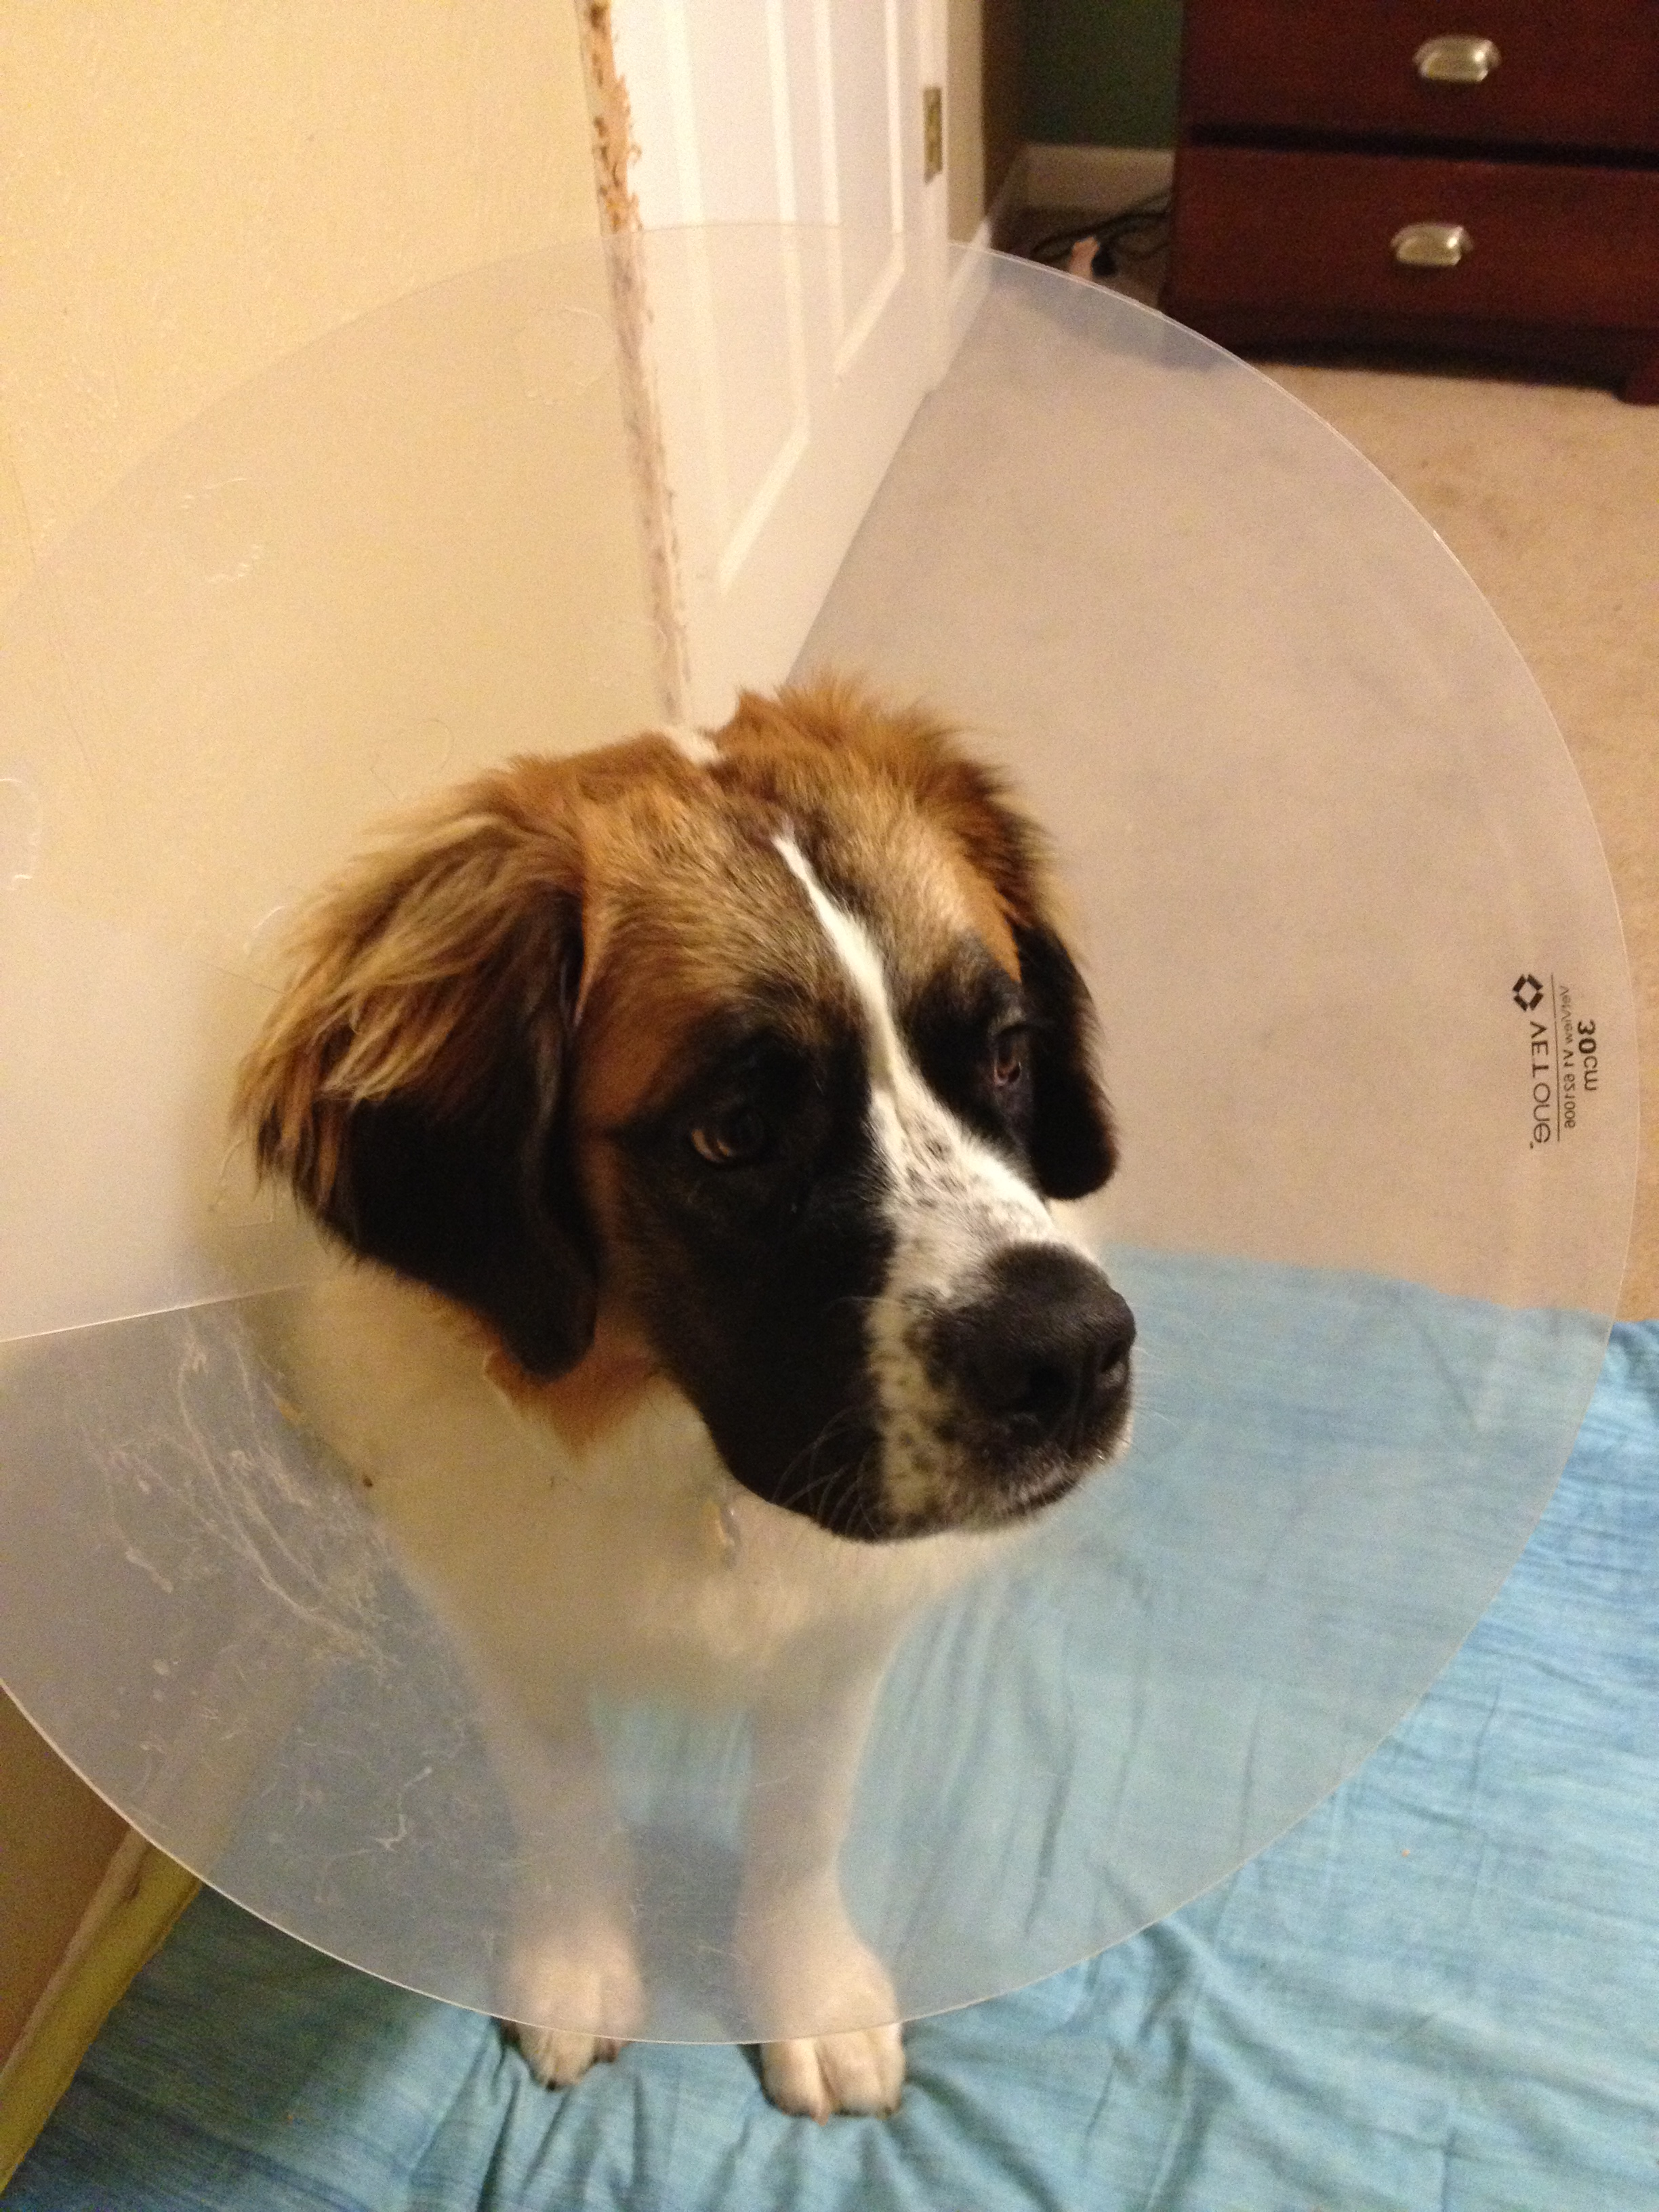 St. Bernard with Cone from Neuter